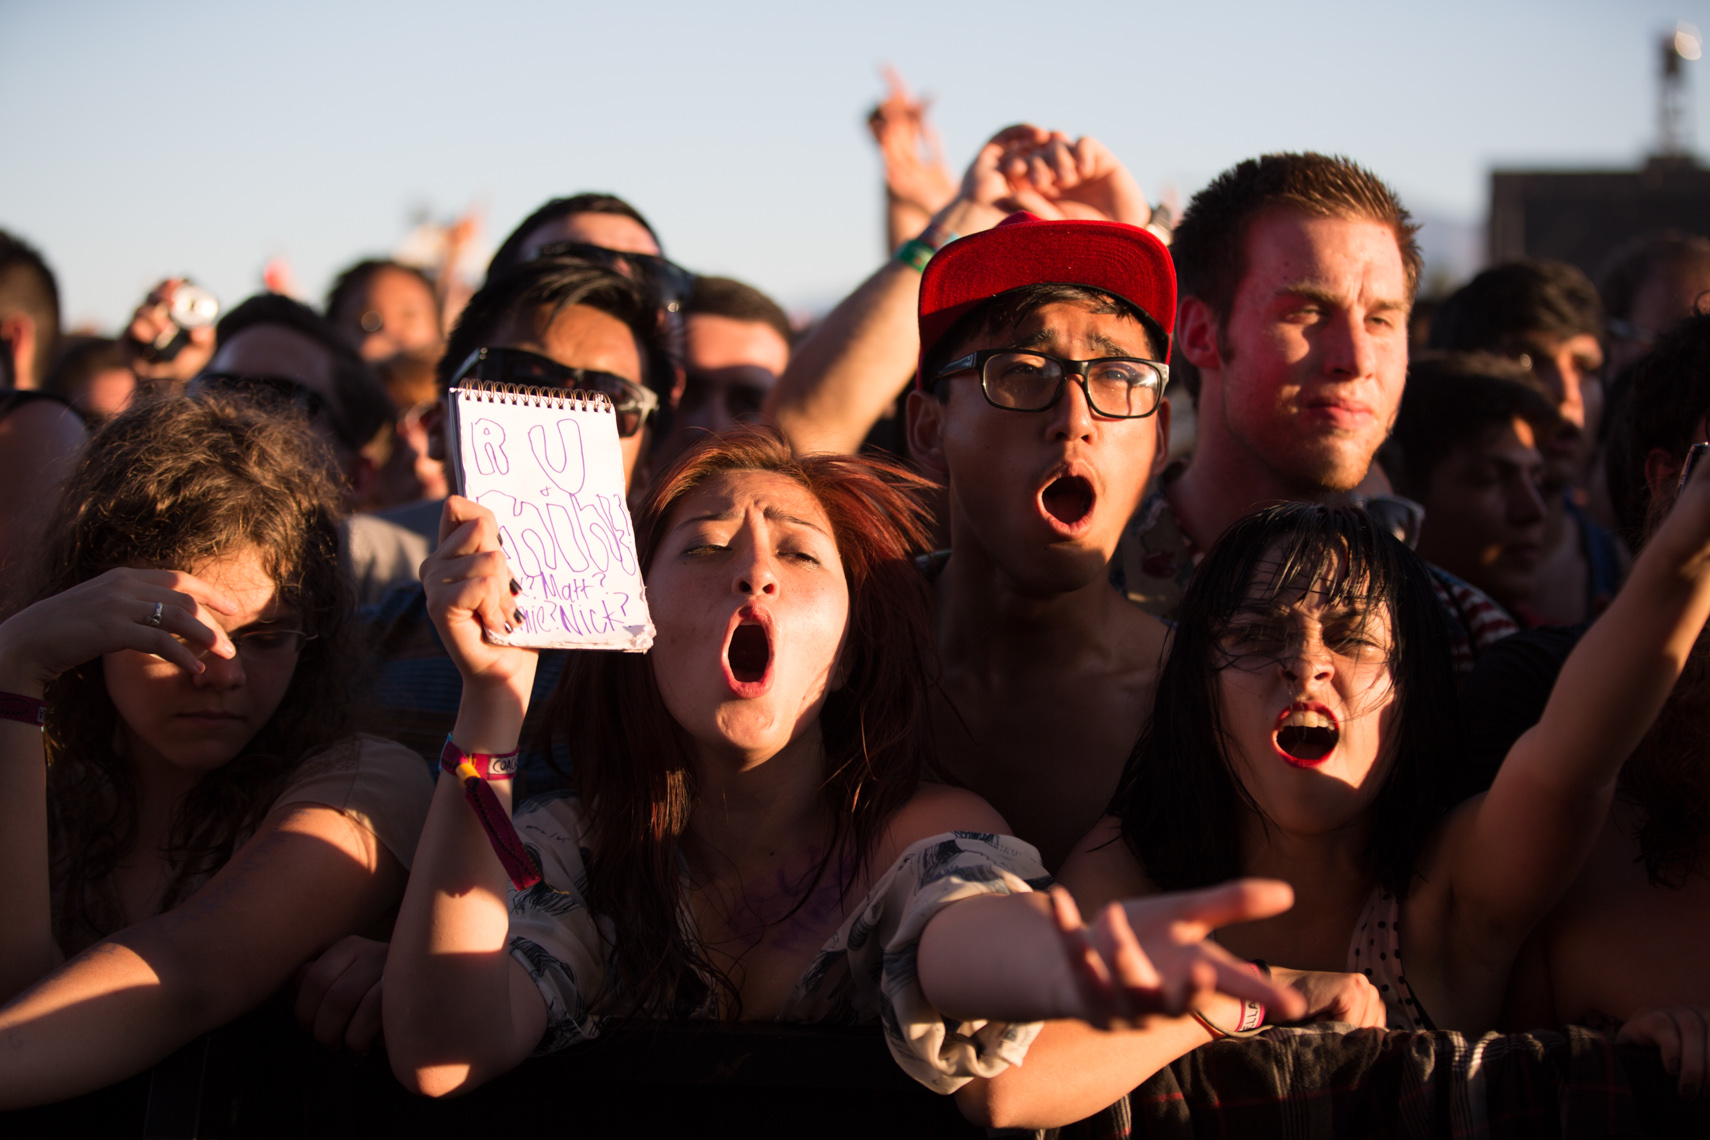 Crazy music fans at Coachella photographed by Forest Woodward for the music festival